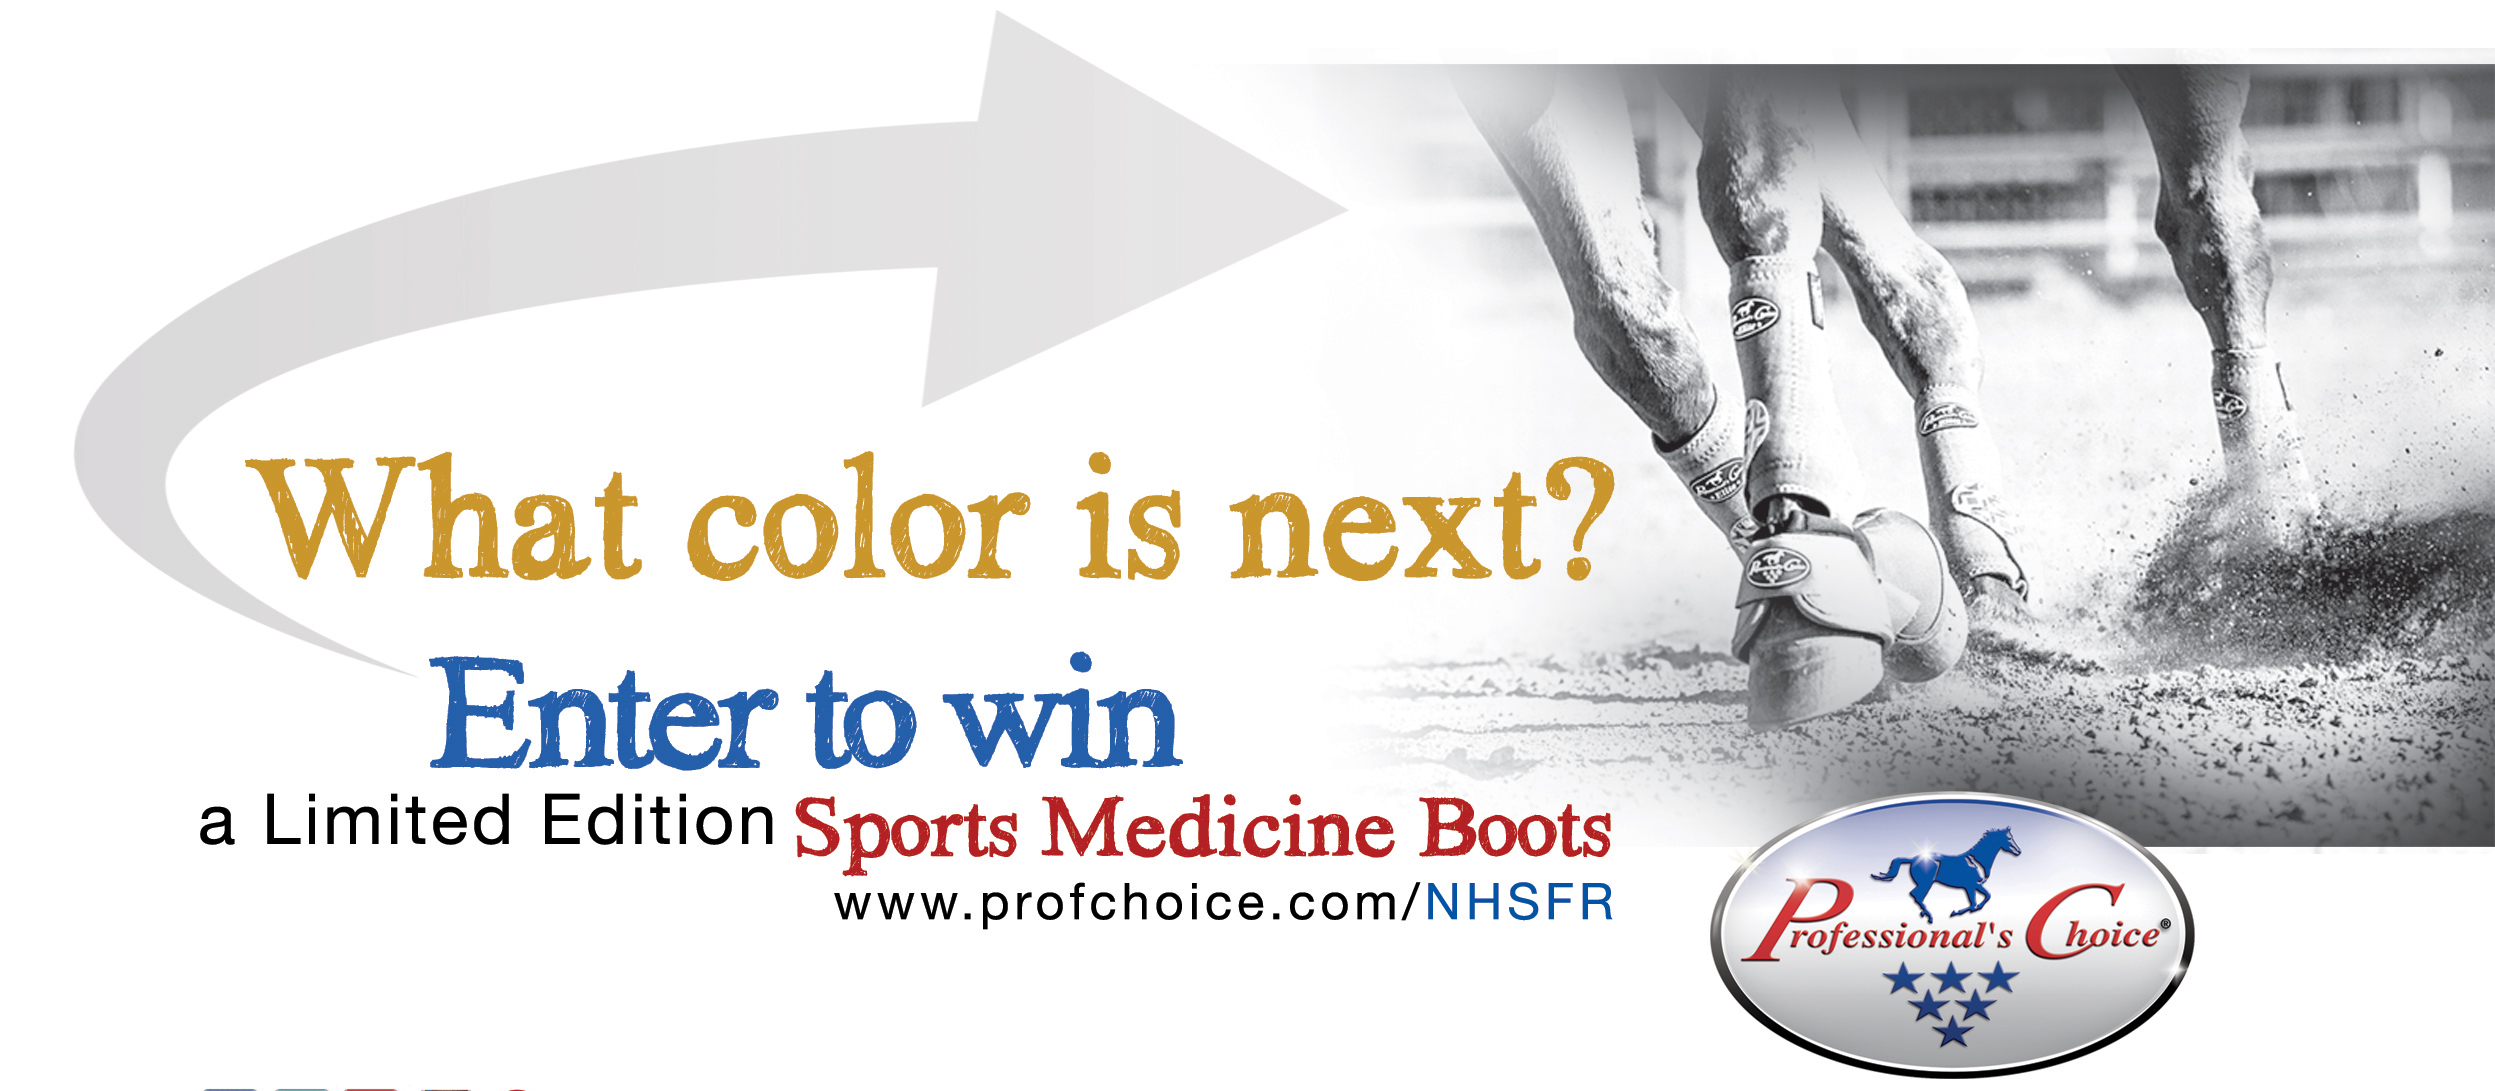 Enter to Win a Limited Edition Sports Medicine Boot